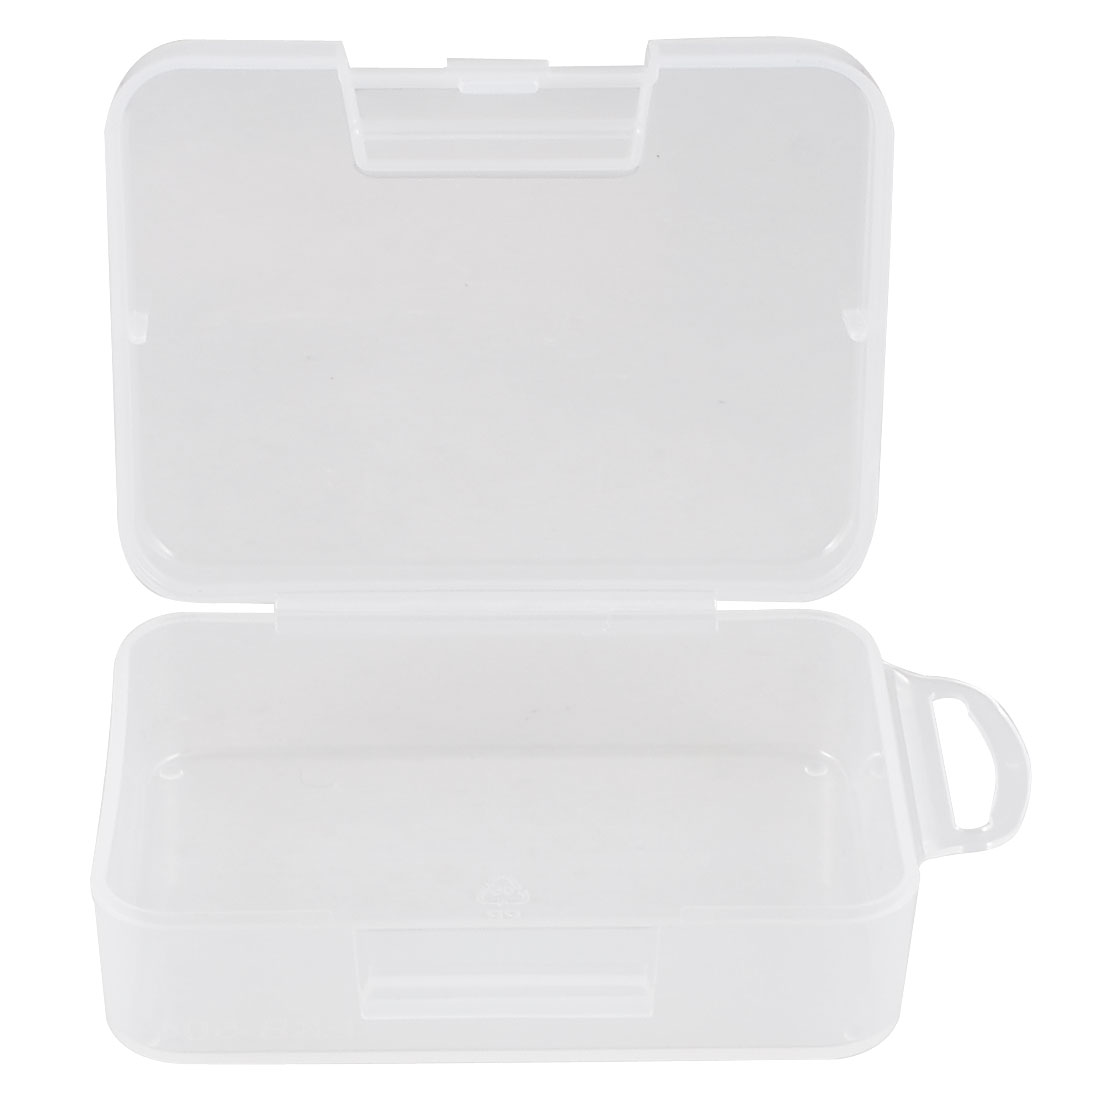 Clear Plastic 9cm x 6.5cm x 3cm Jewelry Earring Fish Hook Case Box Holder